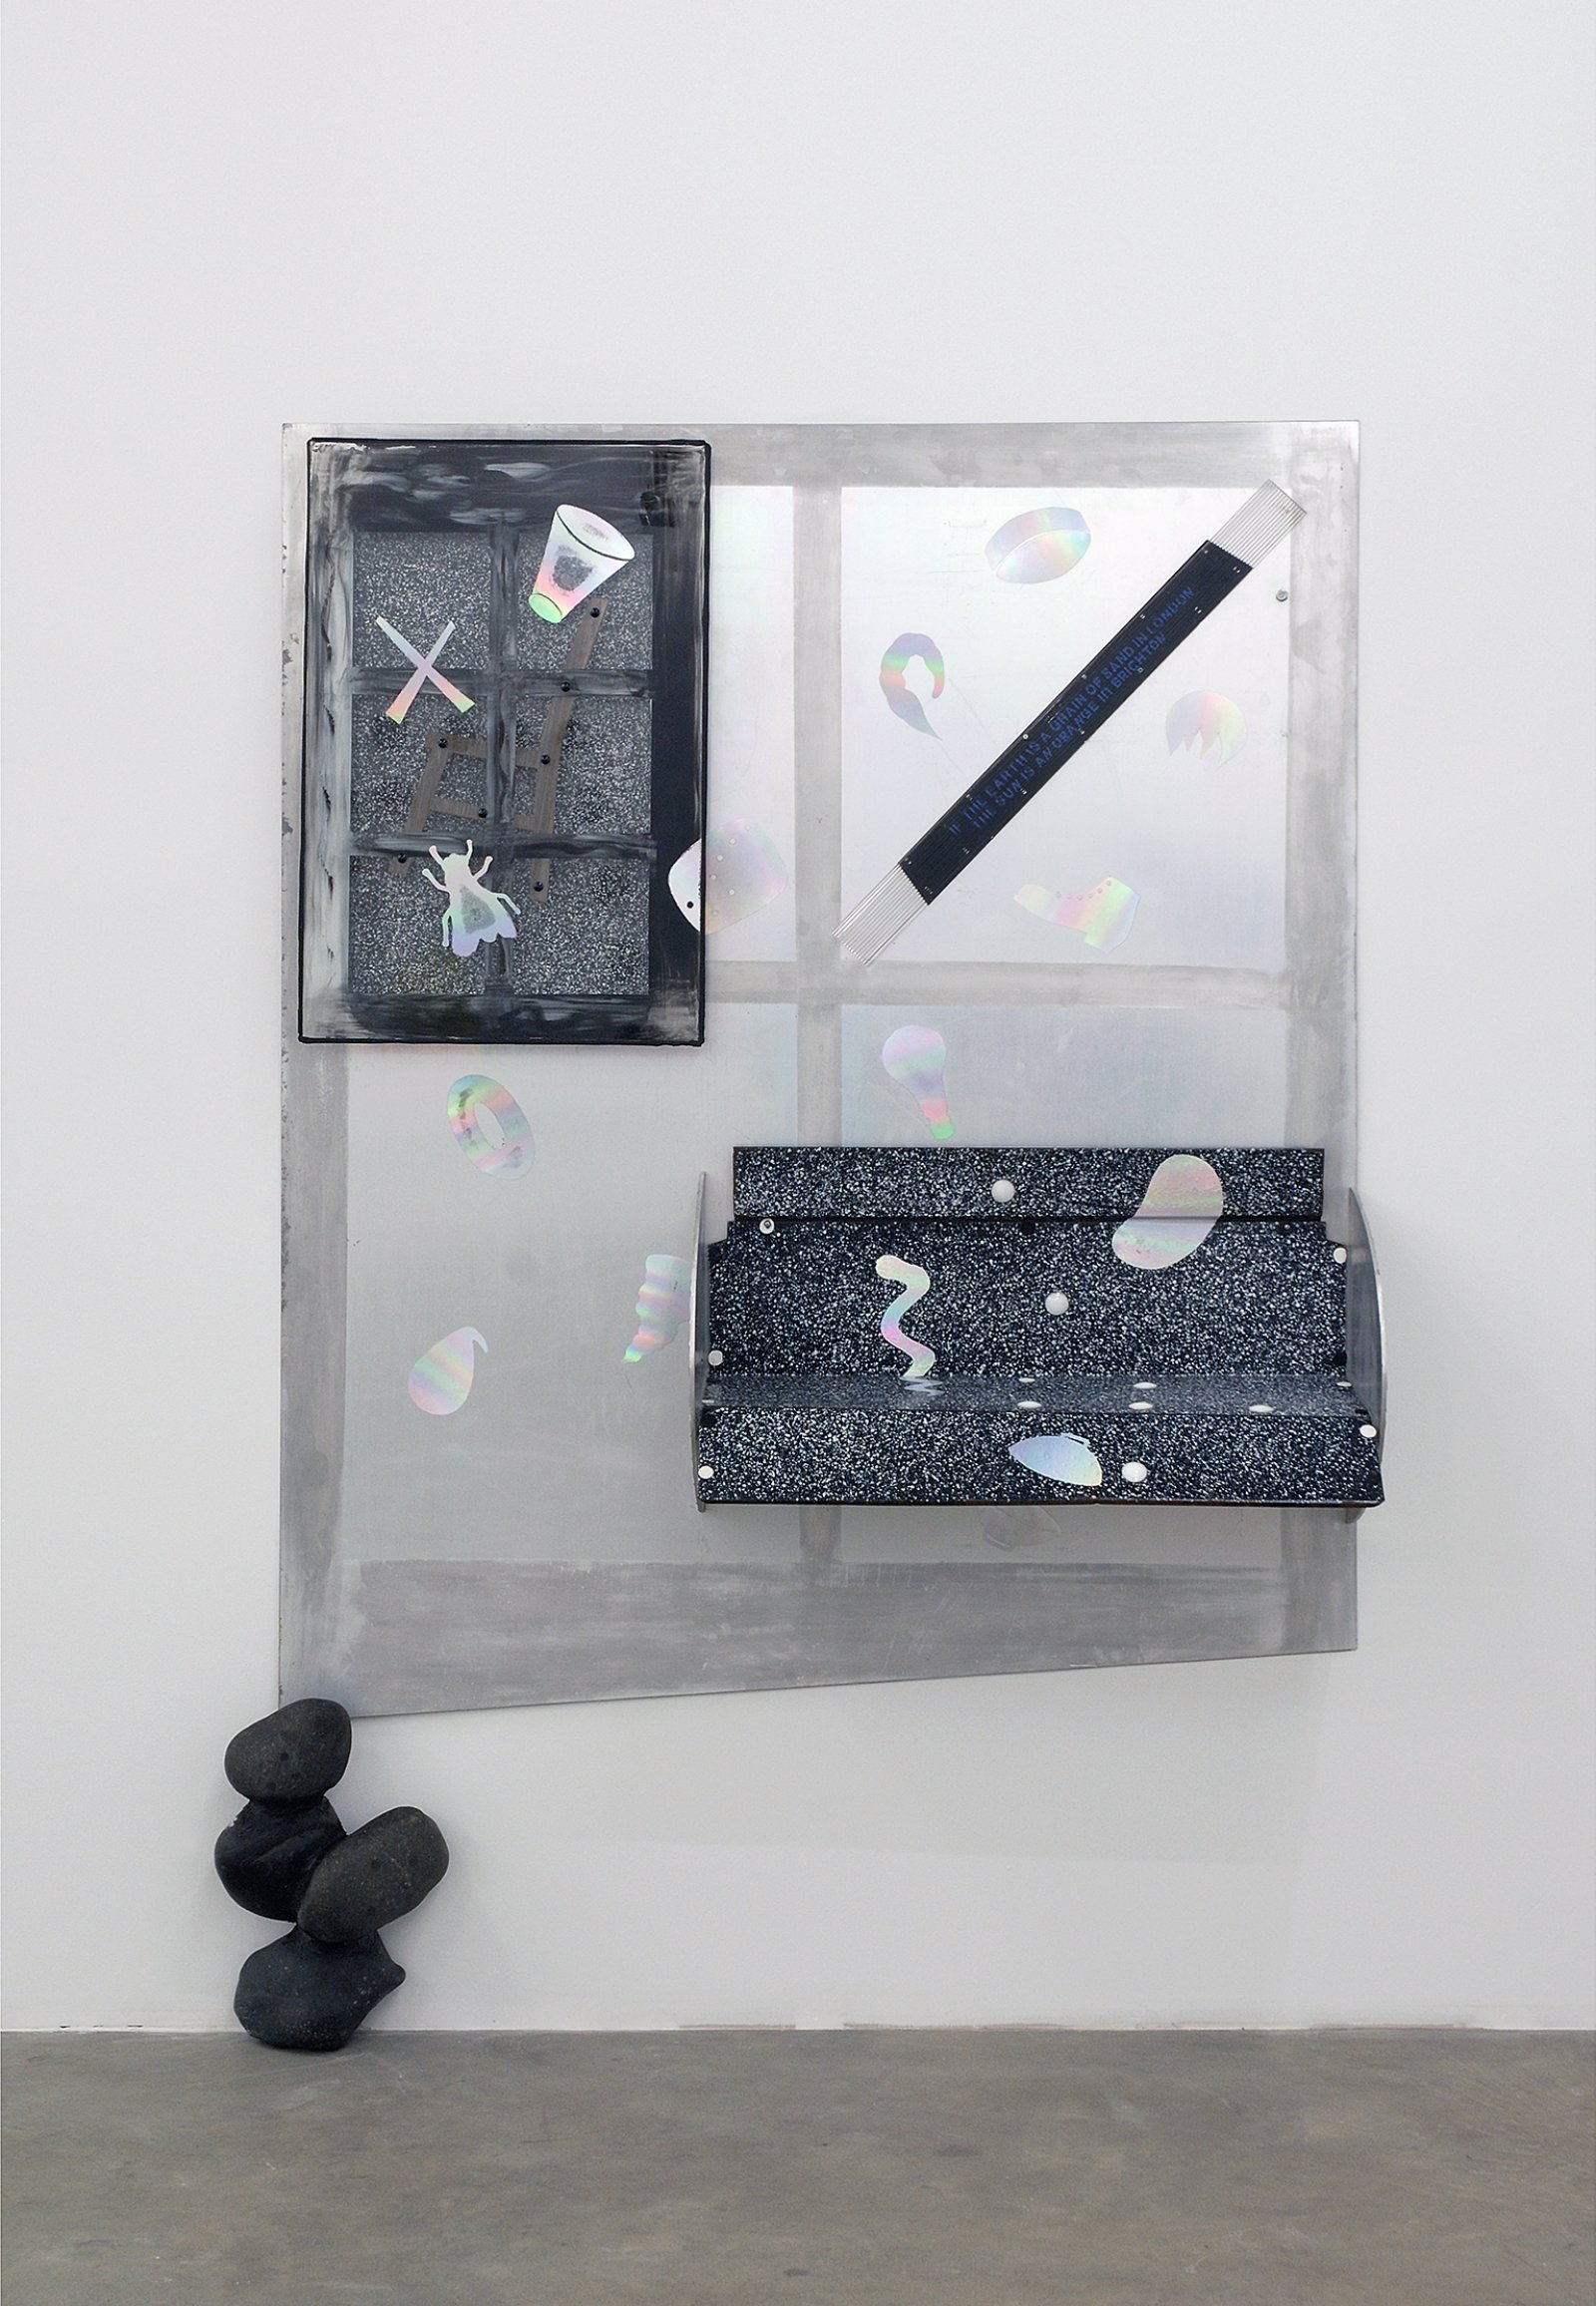 Jerry Pethick, Outskirts, 1987–1988, aluminum, stones, enamelled steel, silicone, spectrafoil, wood, prismatic bakelite, glass, 85 x 56 x 15 in. (215 x 142 x 37 cm)   by Jerry Pethick